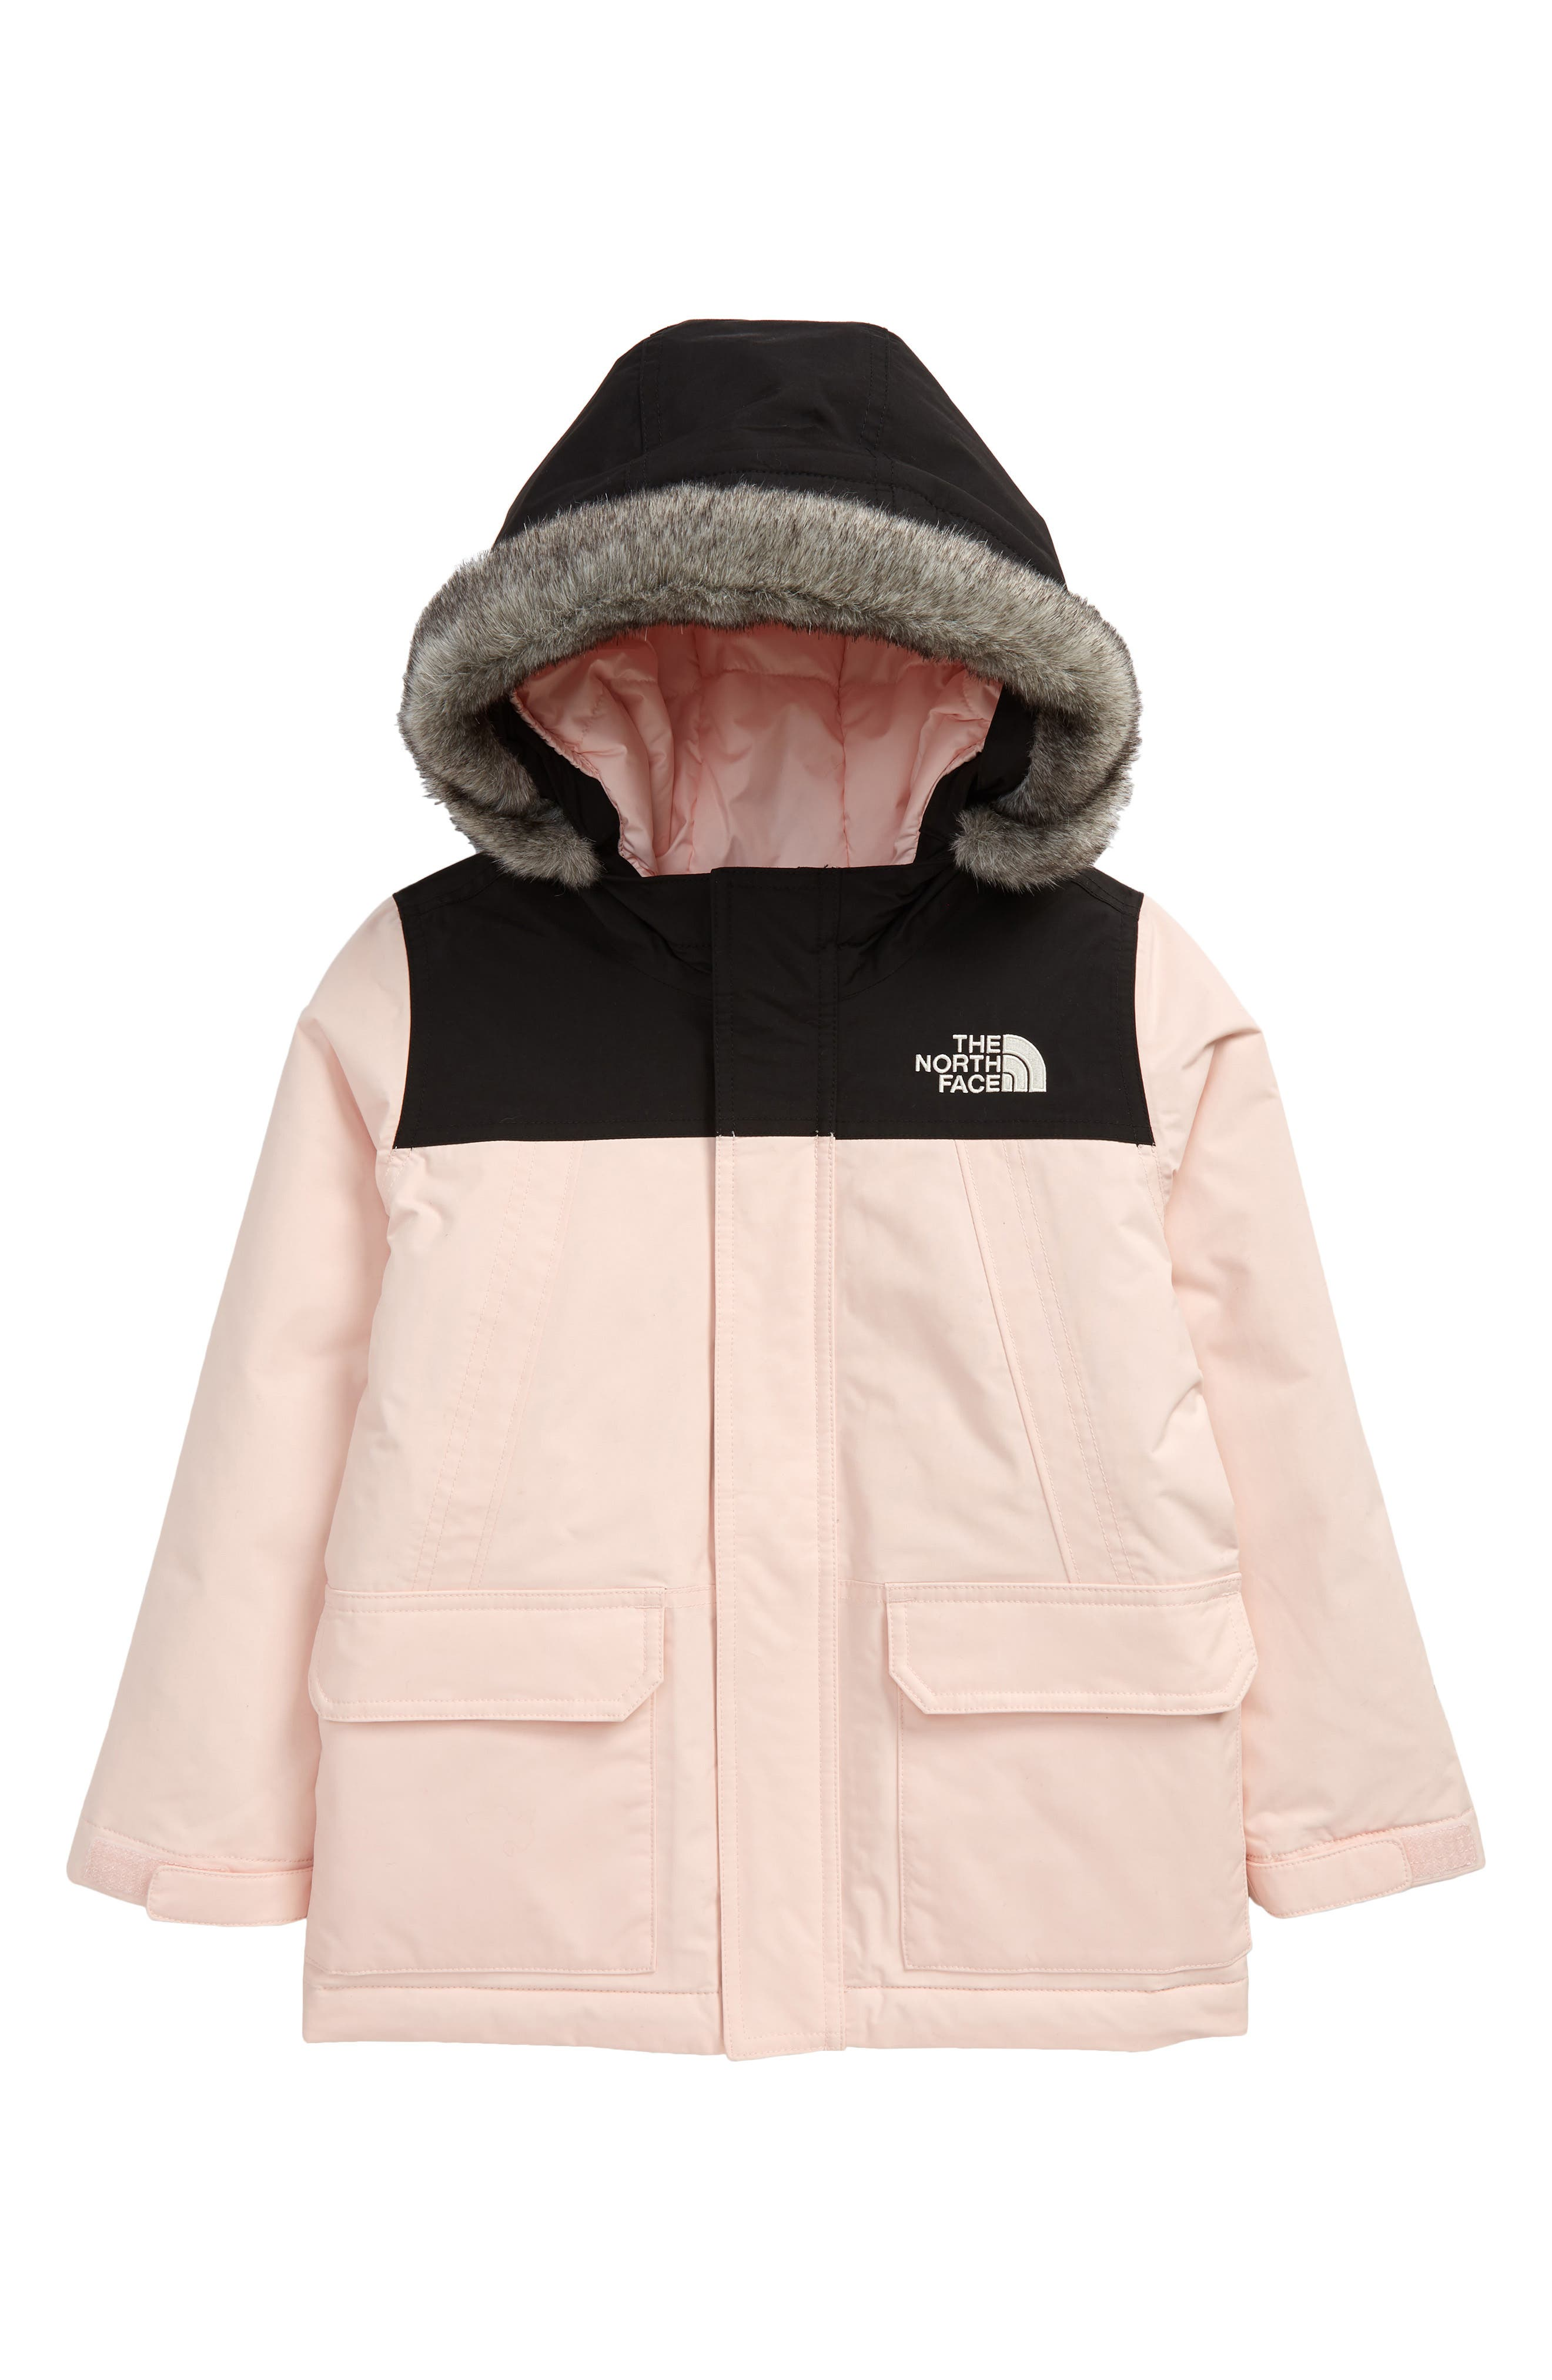 Image of The North Face Kids' McMurdo Waterproof 550 Fill Power Down Parka with Faux Fur Trim